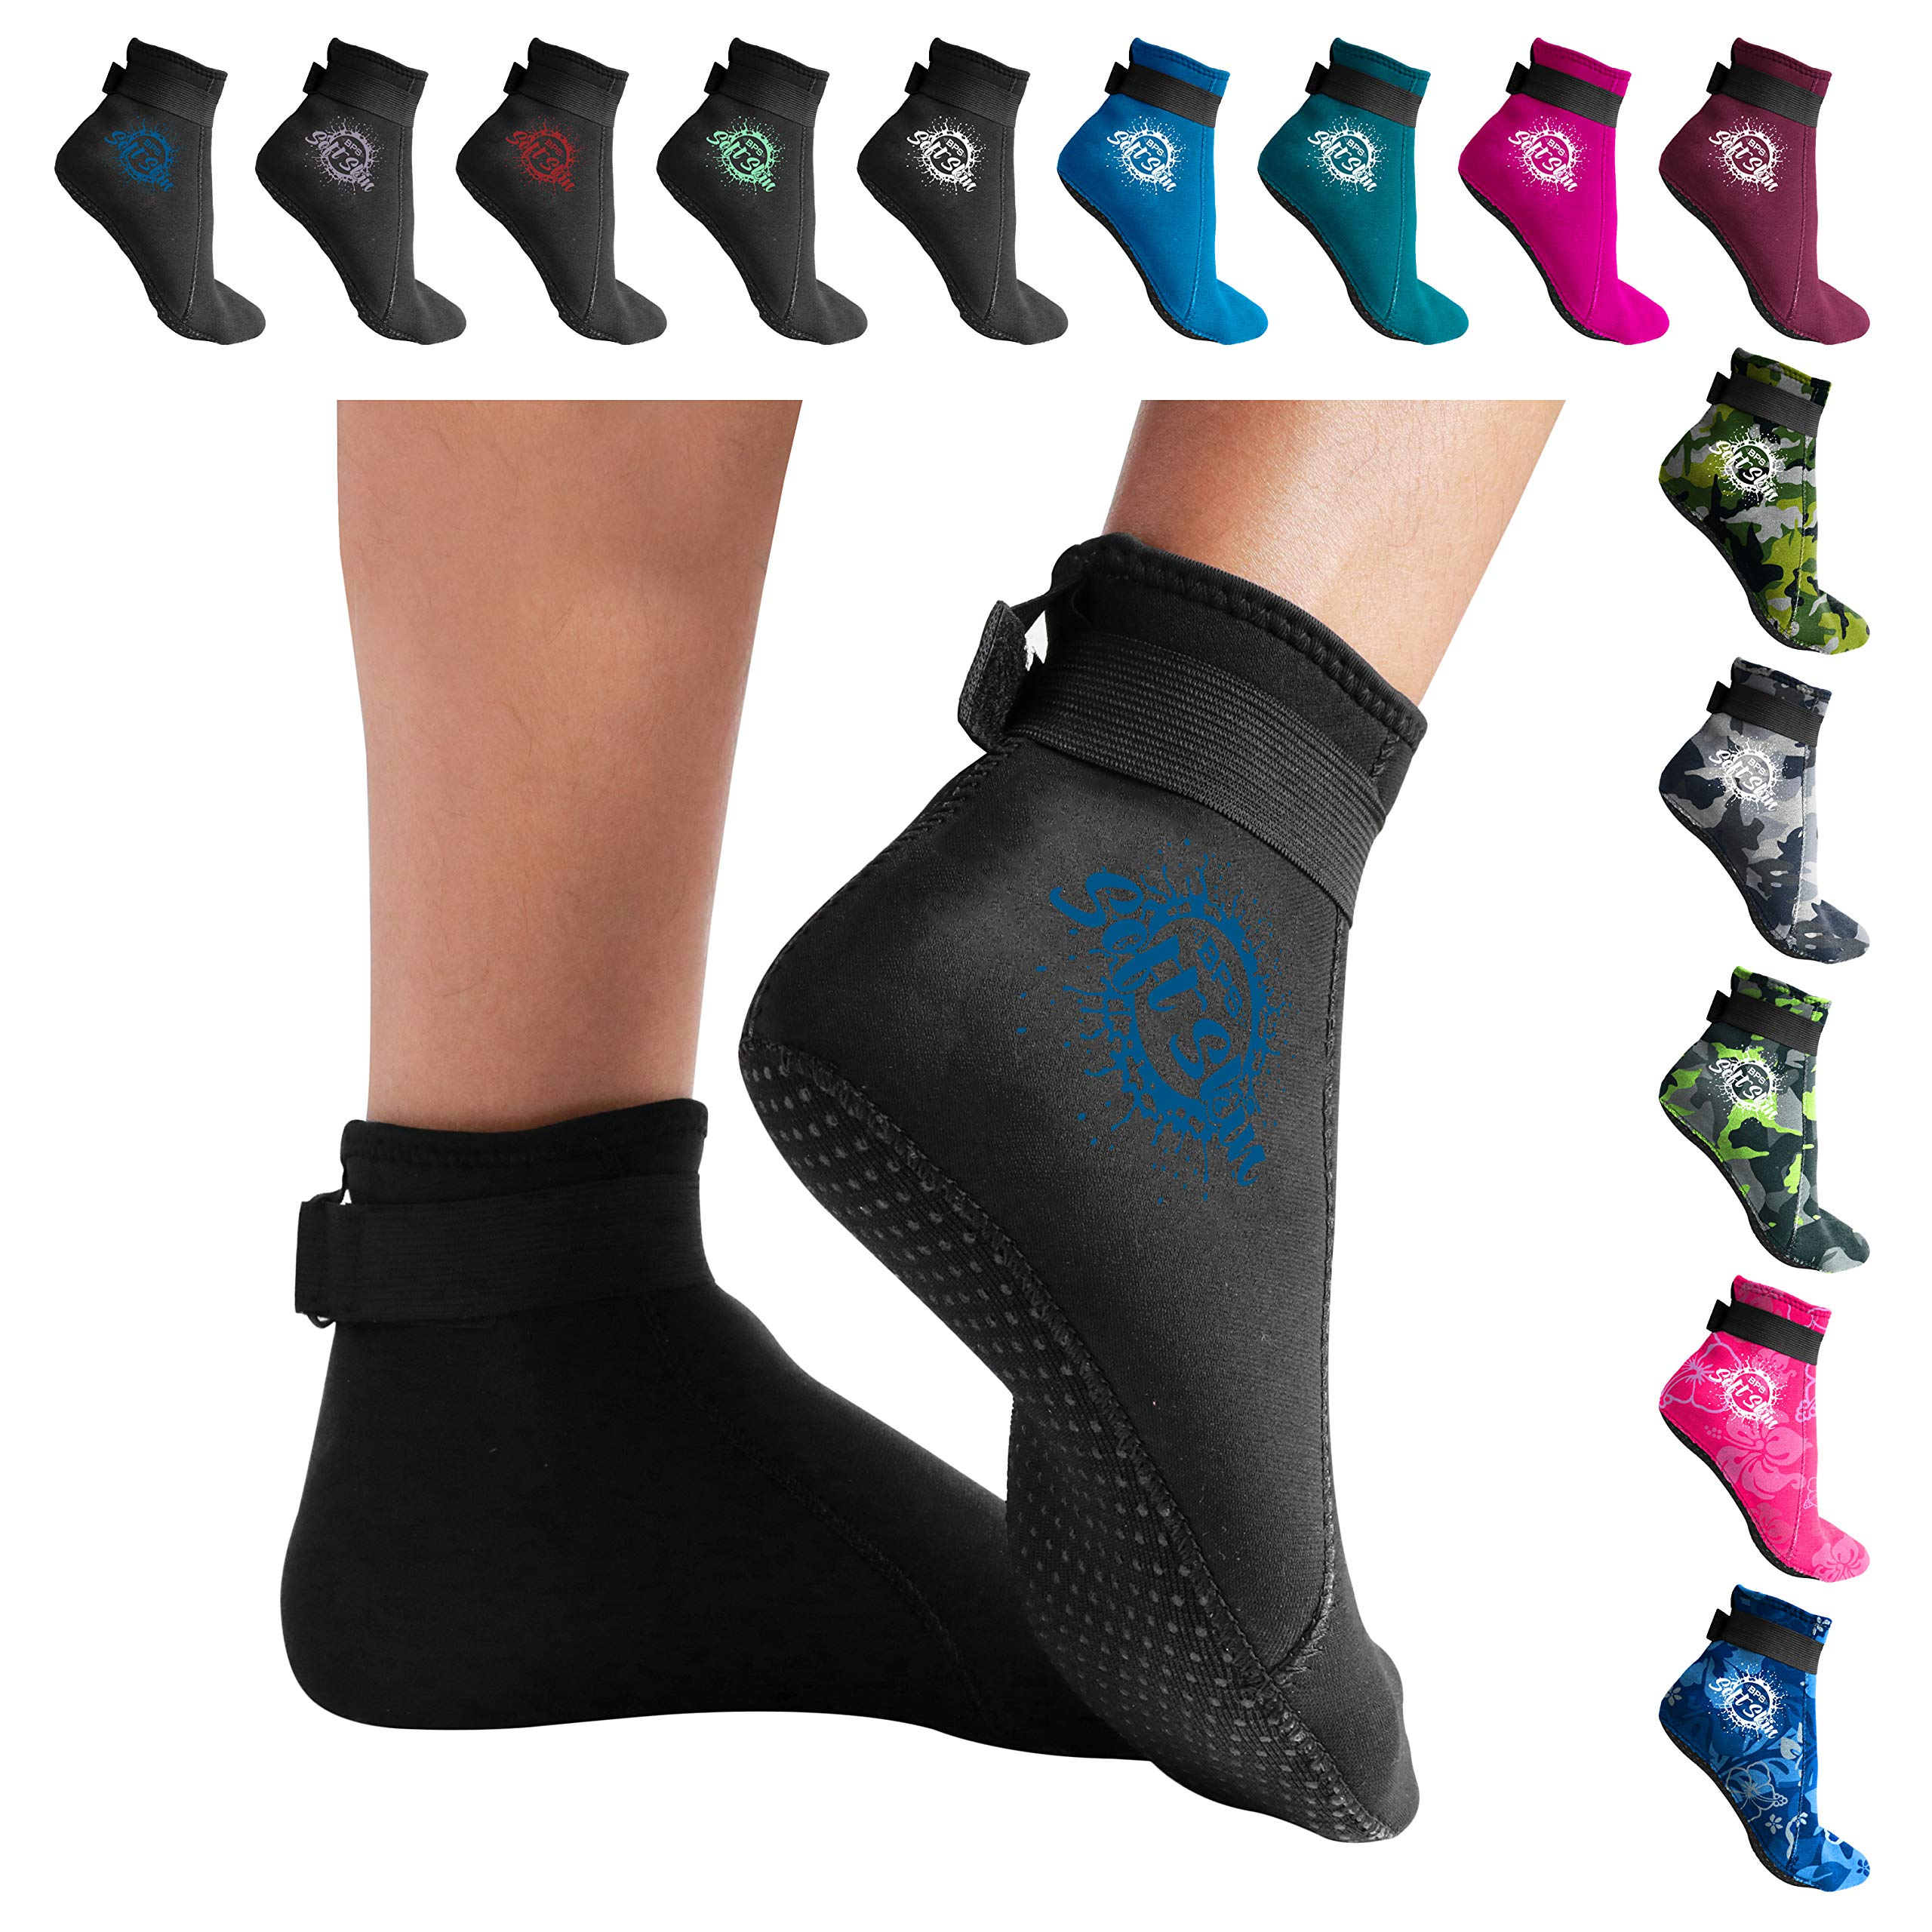 BPS 'Soft Skin' 3mm Neoprene Water Fin Socks w/Grip for Men and Women - Feet Cover for Beach Volleyball, Surfing, Snorkeling, Diving, Kayaking - Low Cut (Black/Snorkel Blue, L)